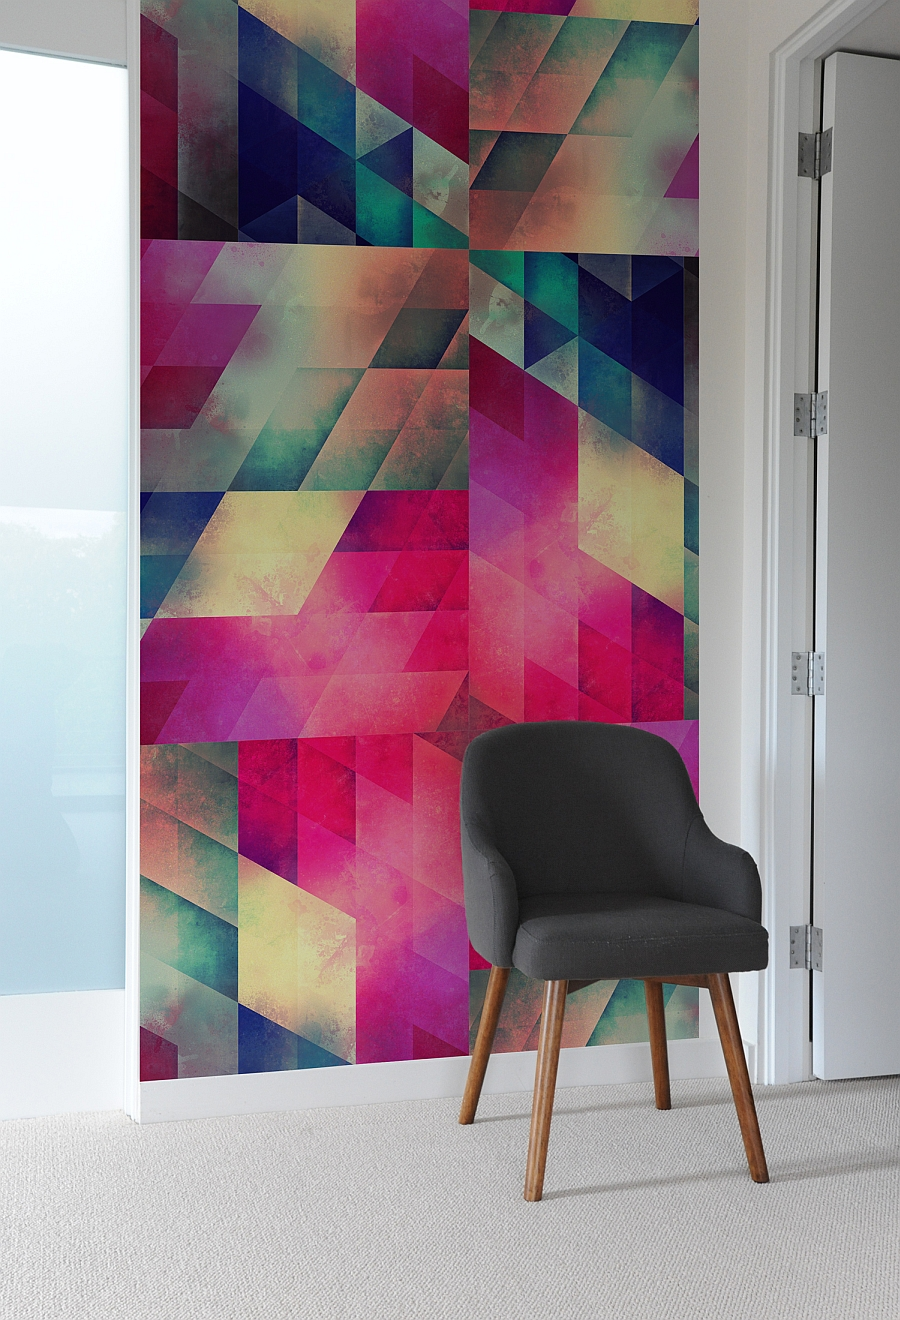 Colorful wall pattern tiles from Spires Create A Captivating Accent Wall With Geometric Patterned Wall Tiles